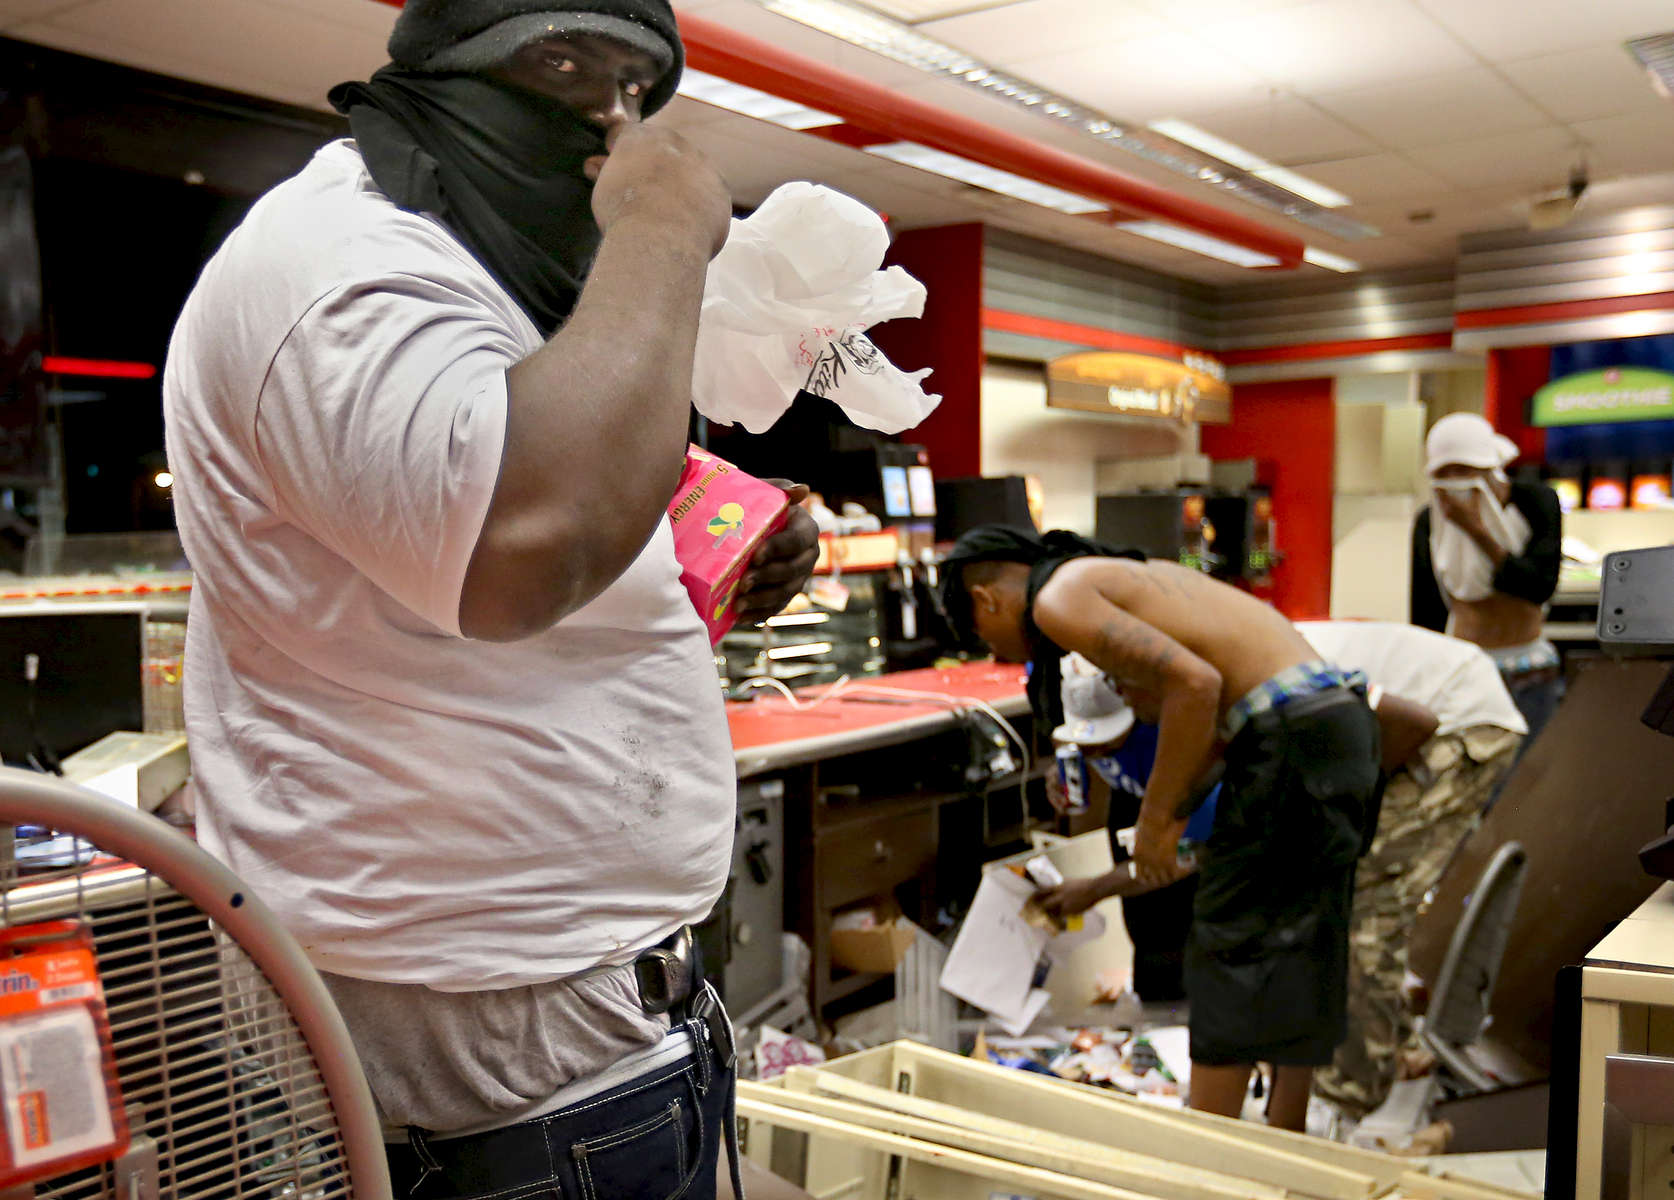 A looter armed with a gun in his waist band steals items from inside the QuikTrip on W. Florissant Avenue in Ferguson, Mo. on Sunday, Aug. 10, 2014.  Looting and riots broke out at the end of a candle light vigil for Michael Brown, an unarmed 18 year-old who was shot and killed by police.  The looters later burned the store after police withdrew from the area to wait for reinforcements.